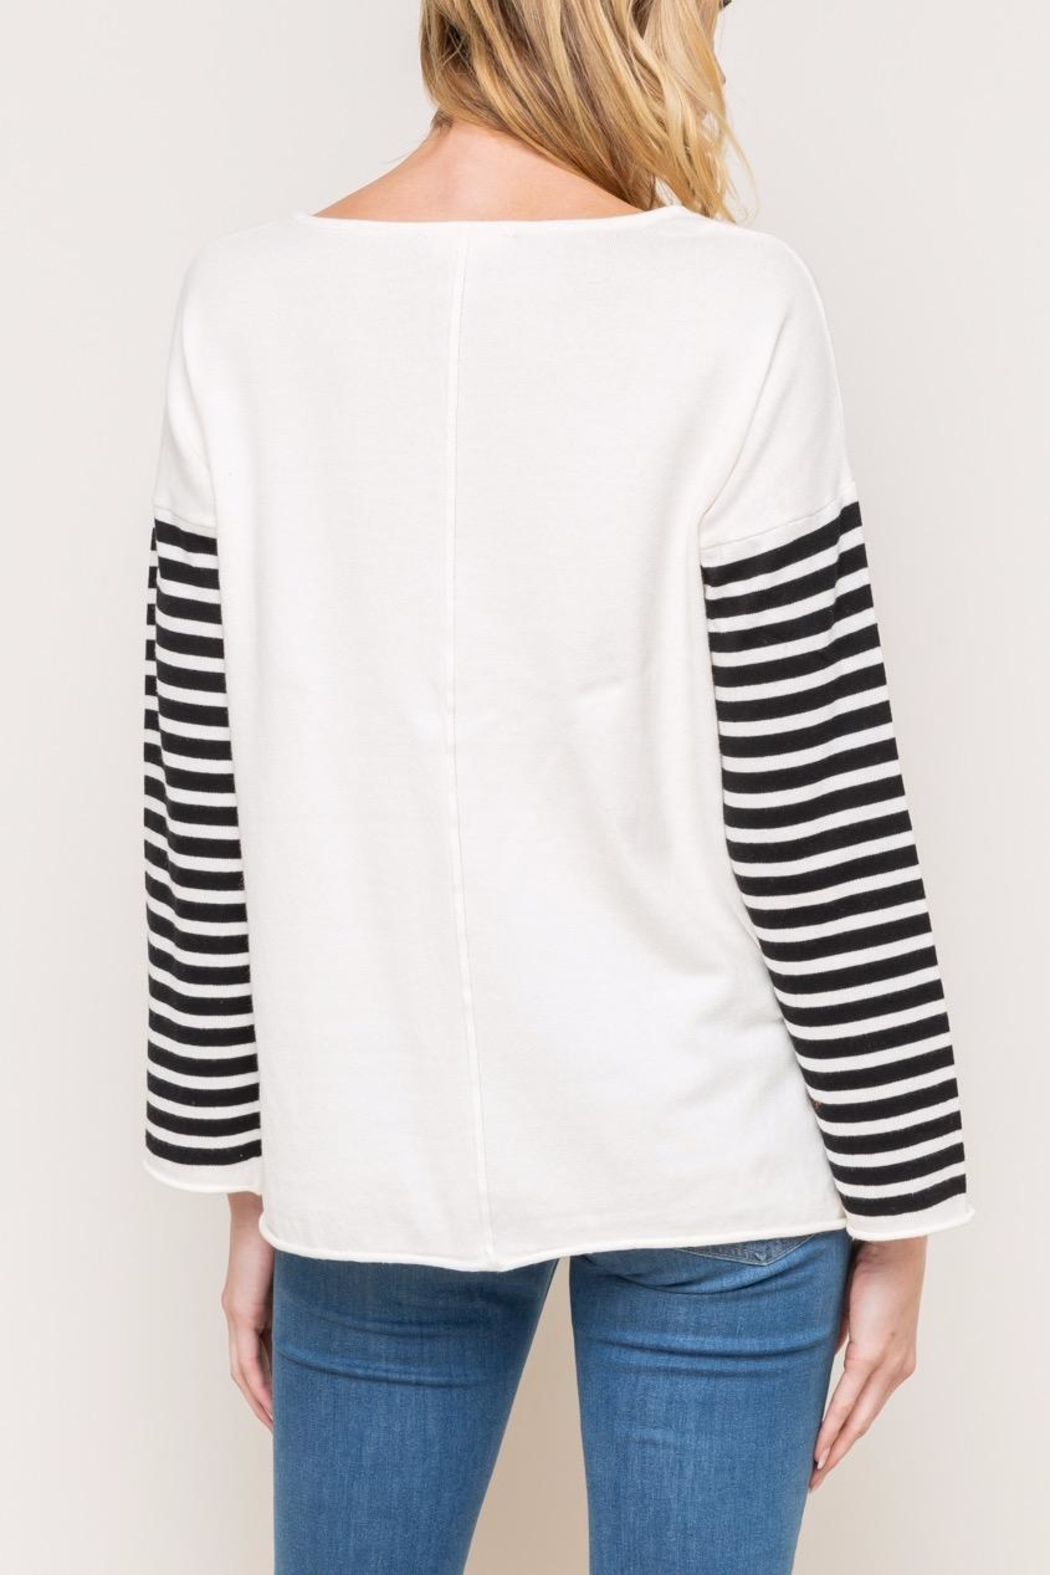 Mystree Striped Sweater - Side Cropped Image